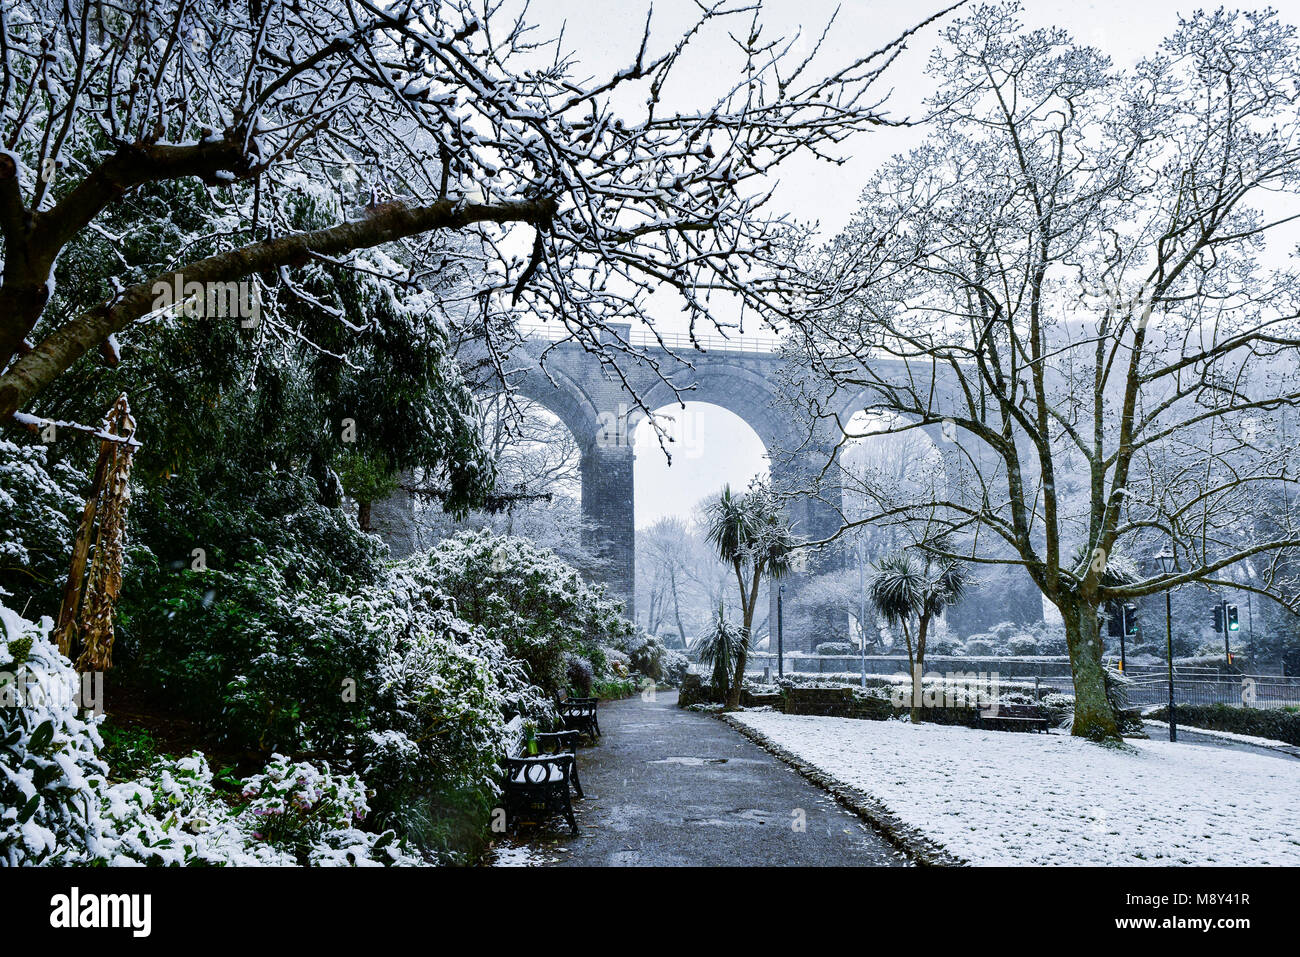 Snow falling in Trenance Gardens in Newquay Cornwall. - Stock Image